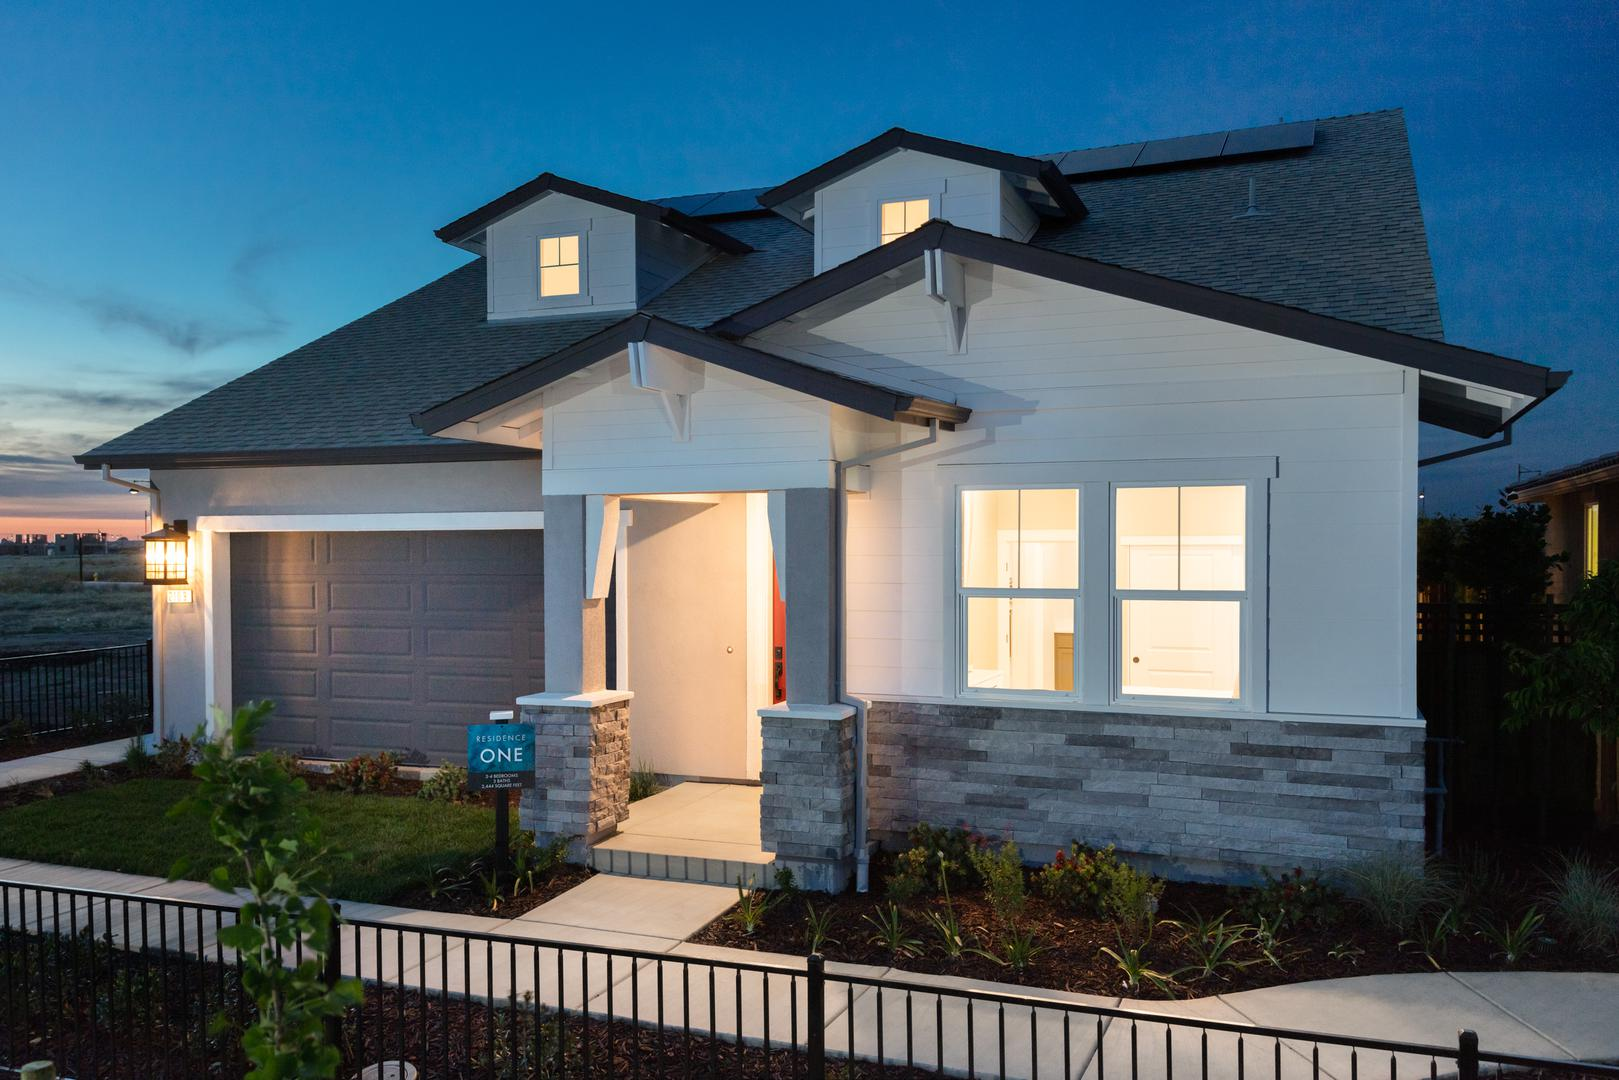 Haven Plan 1 at River Islands in Lathrop California